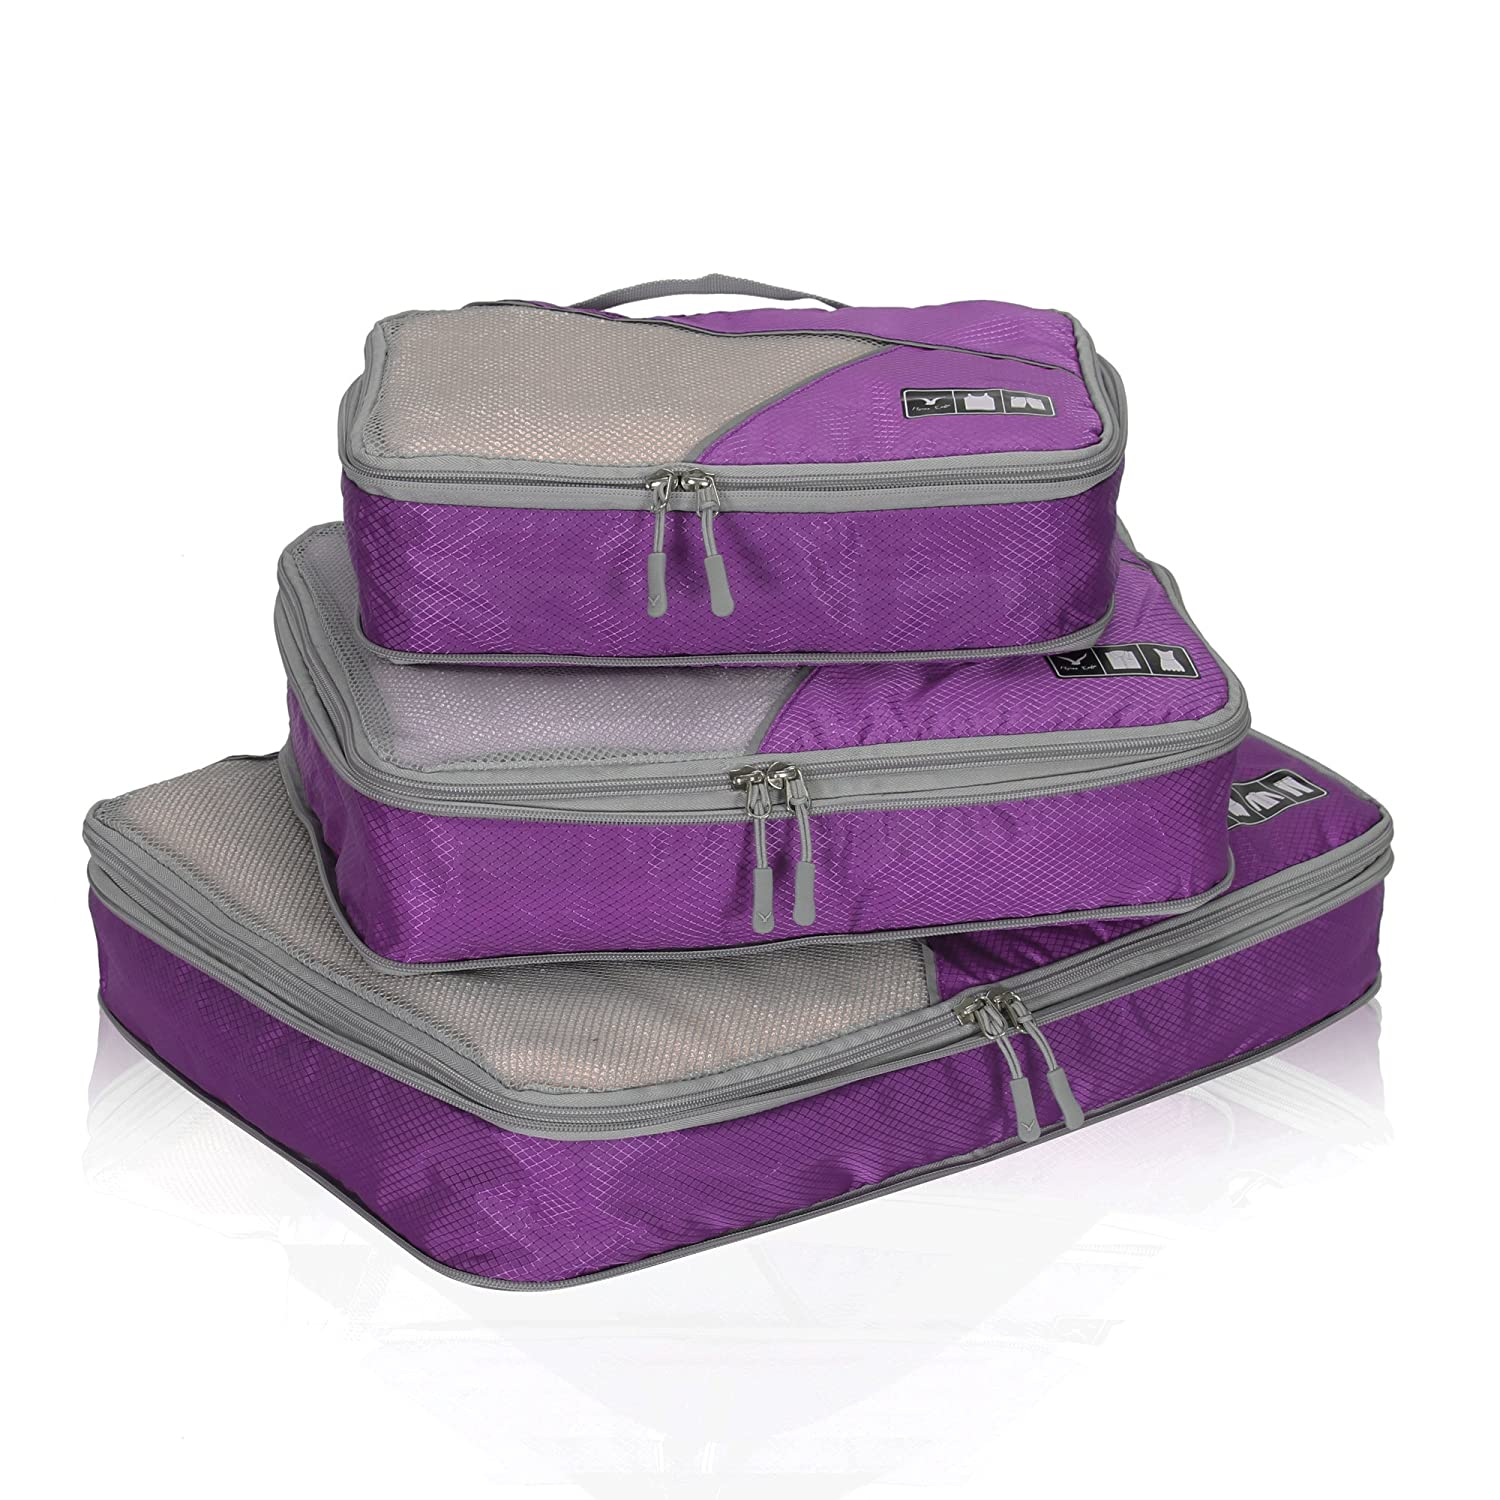 Hynes Eagle Travel Compression Packing Cubes Expandable Packing Organizer 3 Pieces Set, Grey HE0813-2